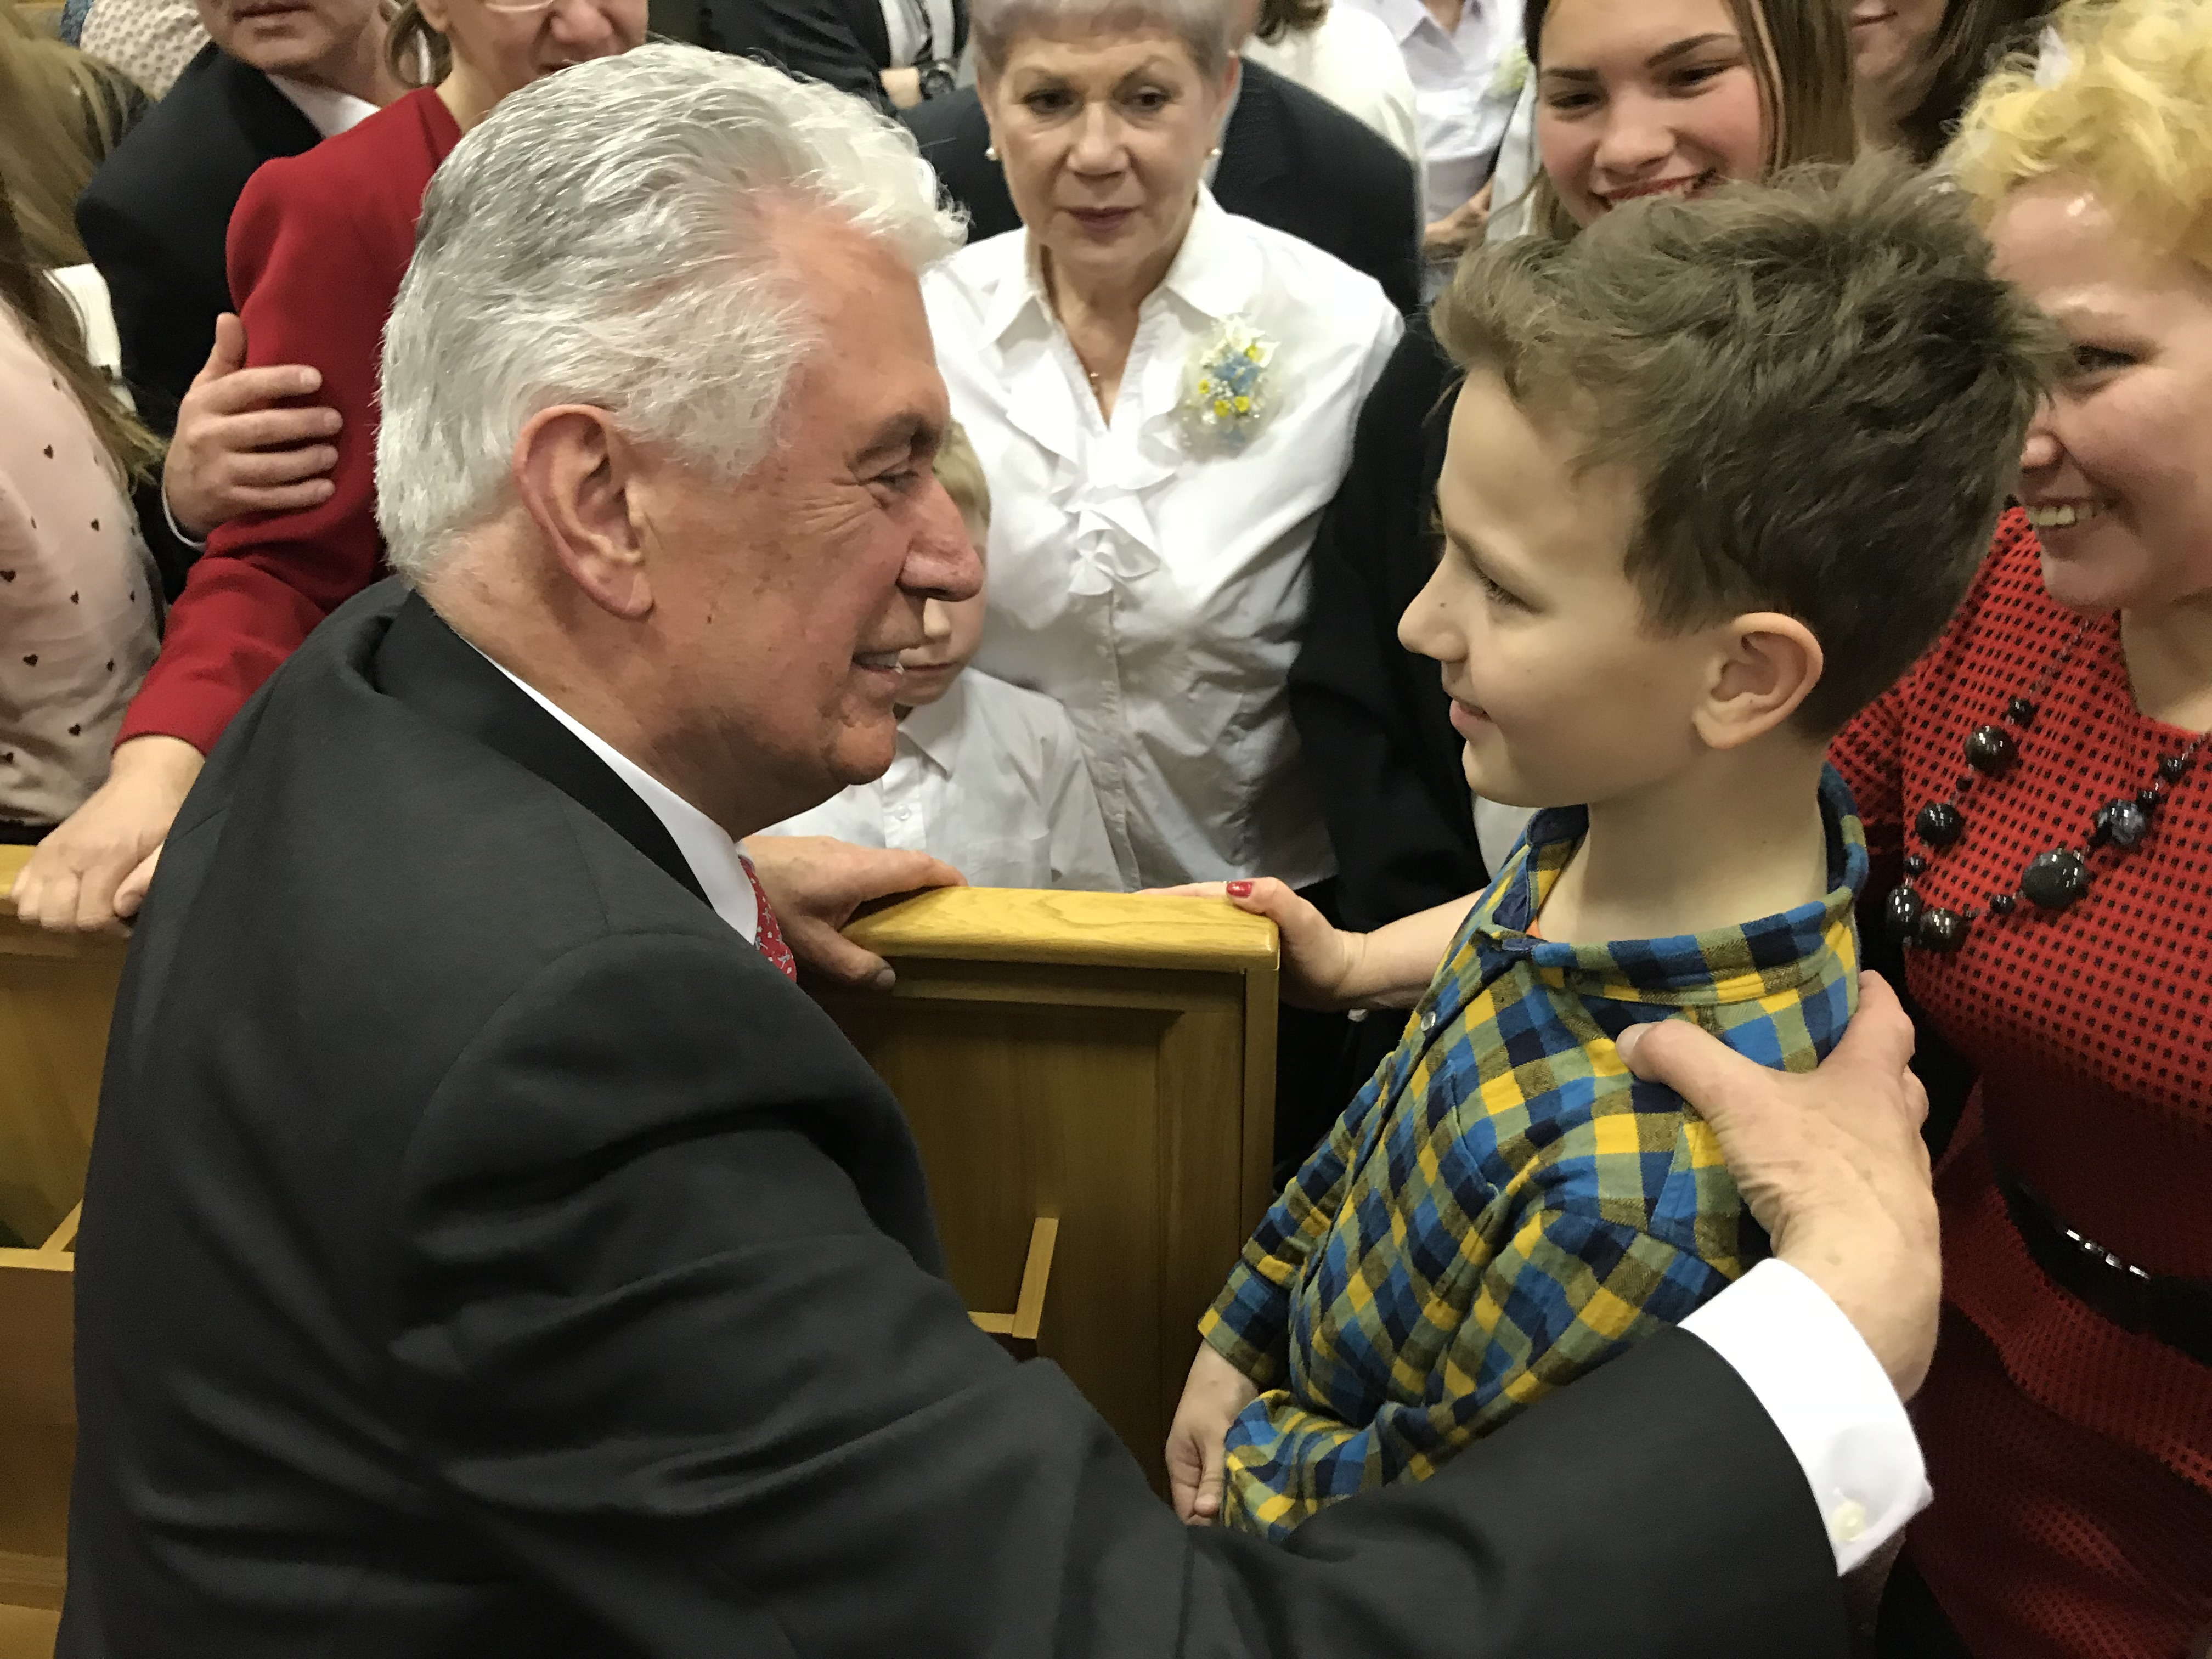 Elder Dieter F. Uchtdorf speaks to a young boy following a member devotional in St. Petersburg, Russia, on April 26, 2018.